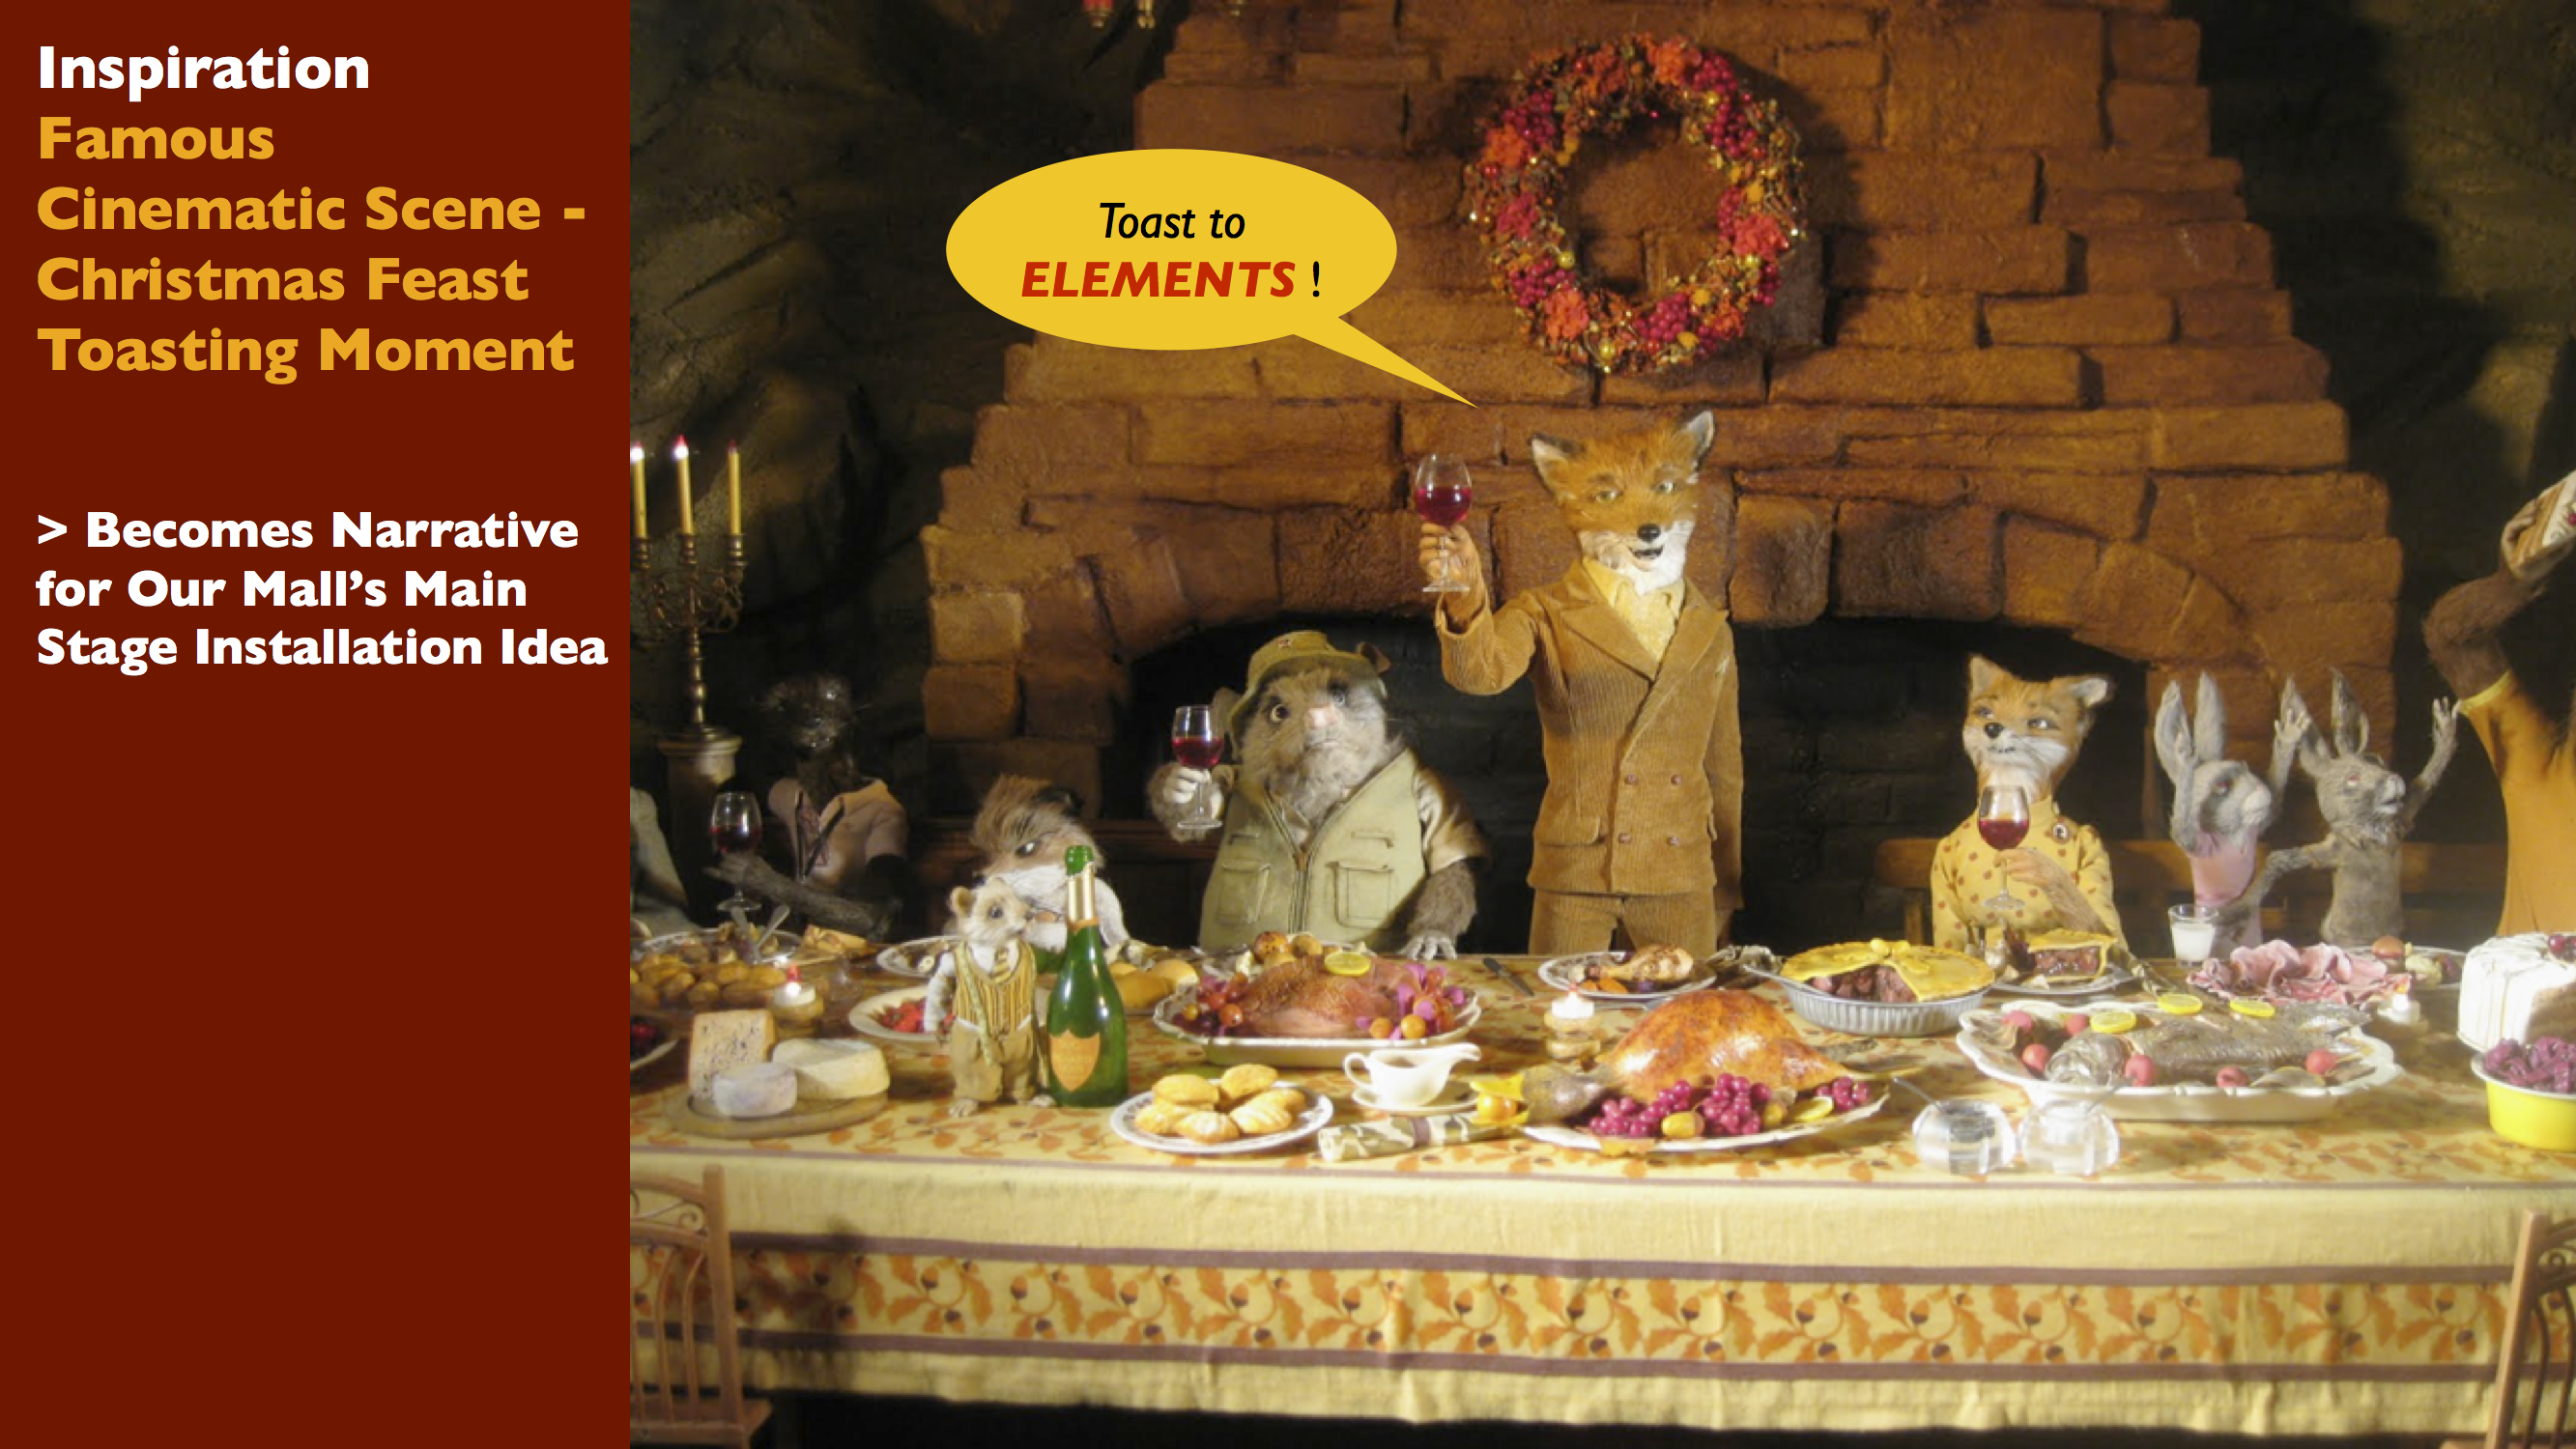 Elements-Xmas-Idea 02-Fantastic Feast concept image 03